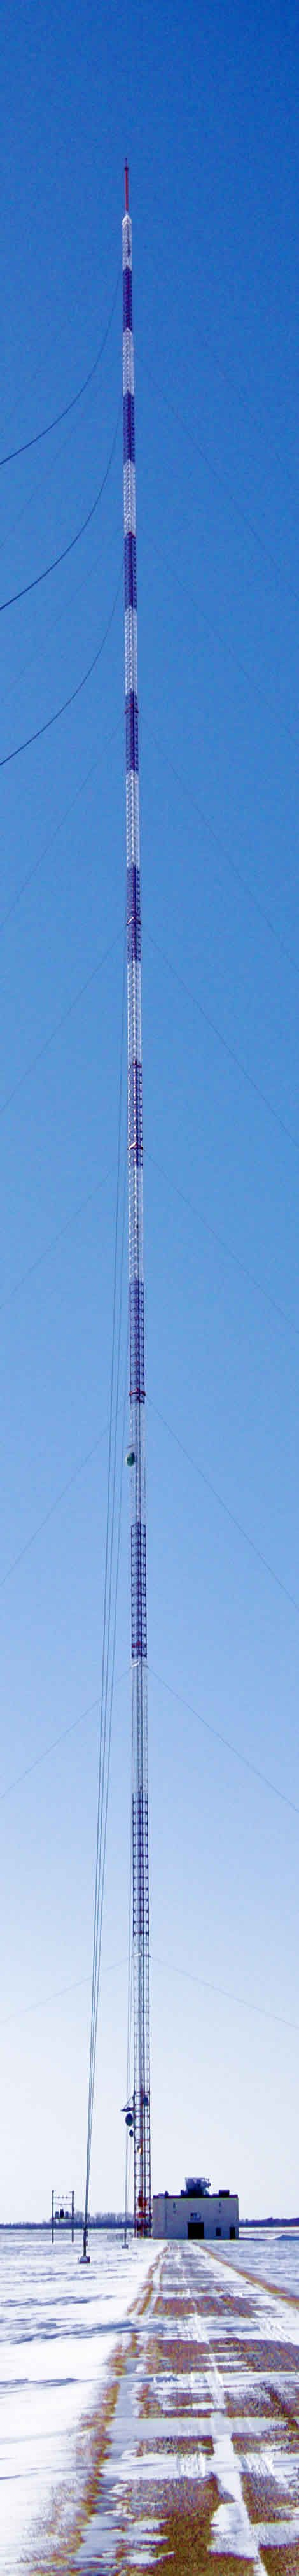 The World's Tallest Structure: The 2,063-Foot Tall KVLY-TV Mast Near Fargo, North Dakota (628.8m)